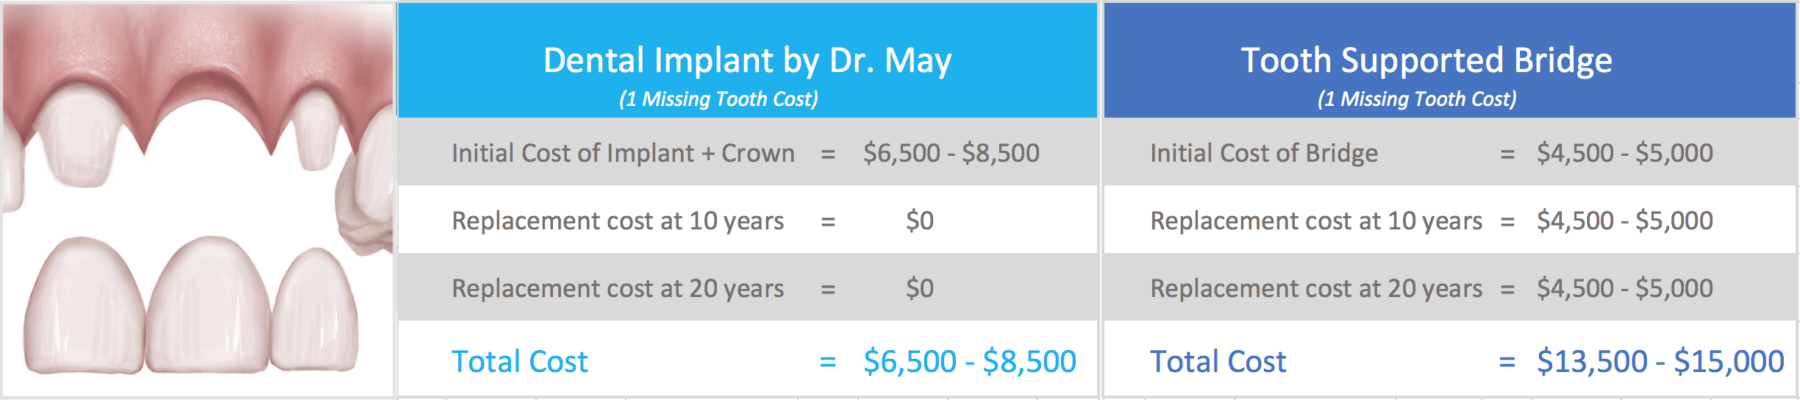 Top Dental Implant Dentist Connecticut | Top Dental Implant Surgeon Costs | Bridge vs Dental Implant Dr. Yuriy May | Natural Dentistry CT